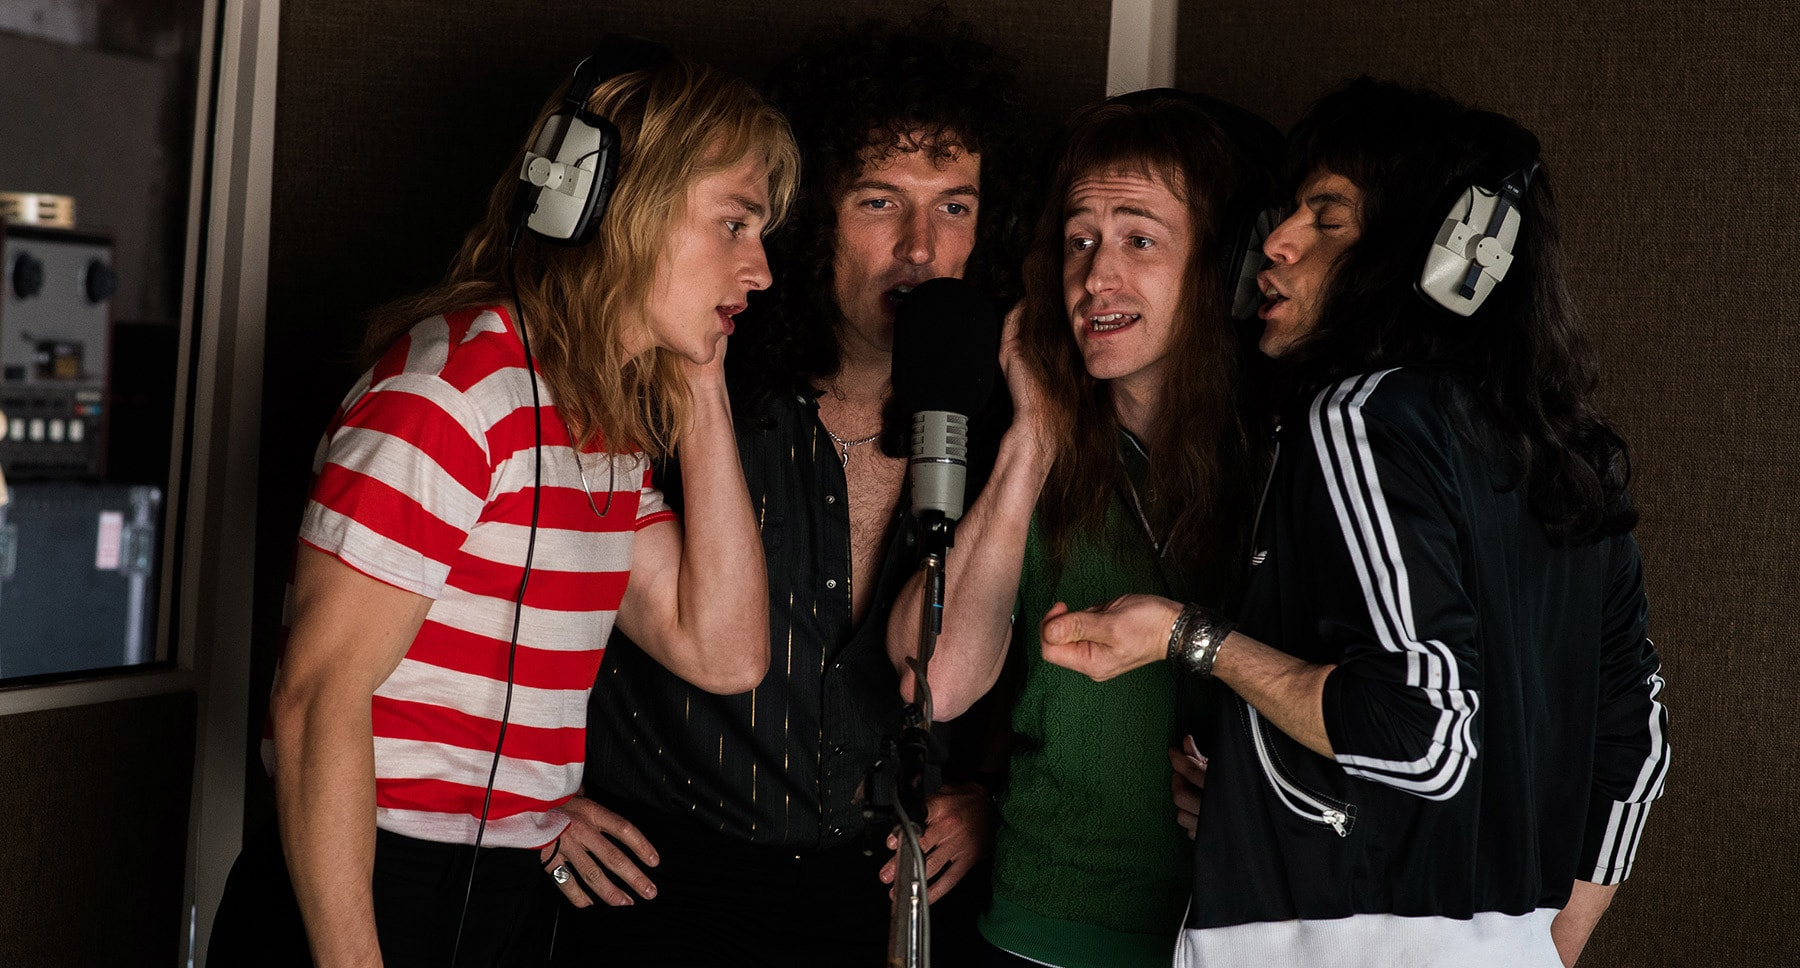 "Rami Malek (as Freddie Mercury) Gwilym Lee (as Brian May), Ben Hardy (as Roger Taylor), and Joseph Mazzello (as John Deacon) singing in the movie ""Bohemian Rhapsody"""